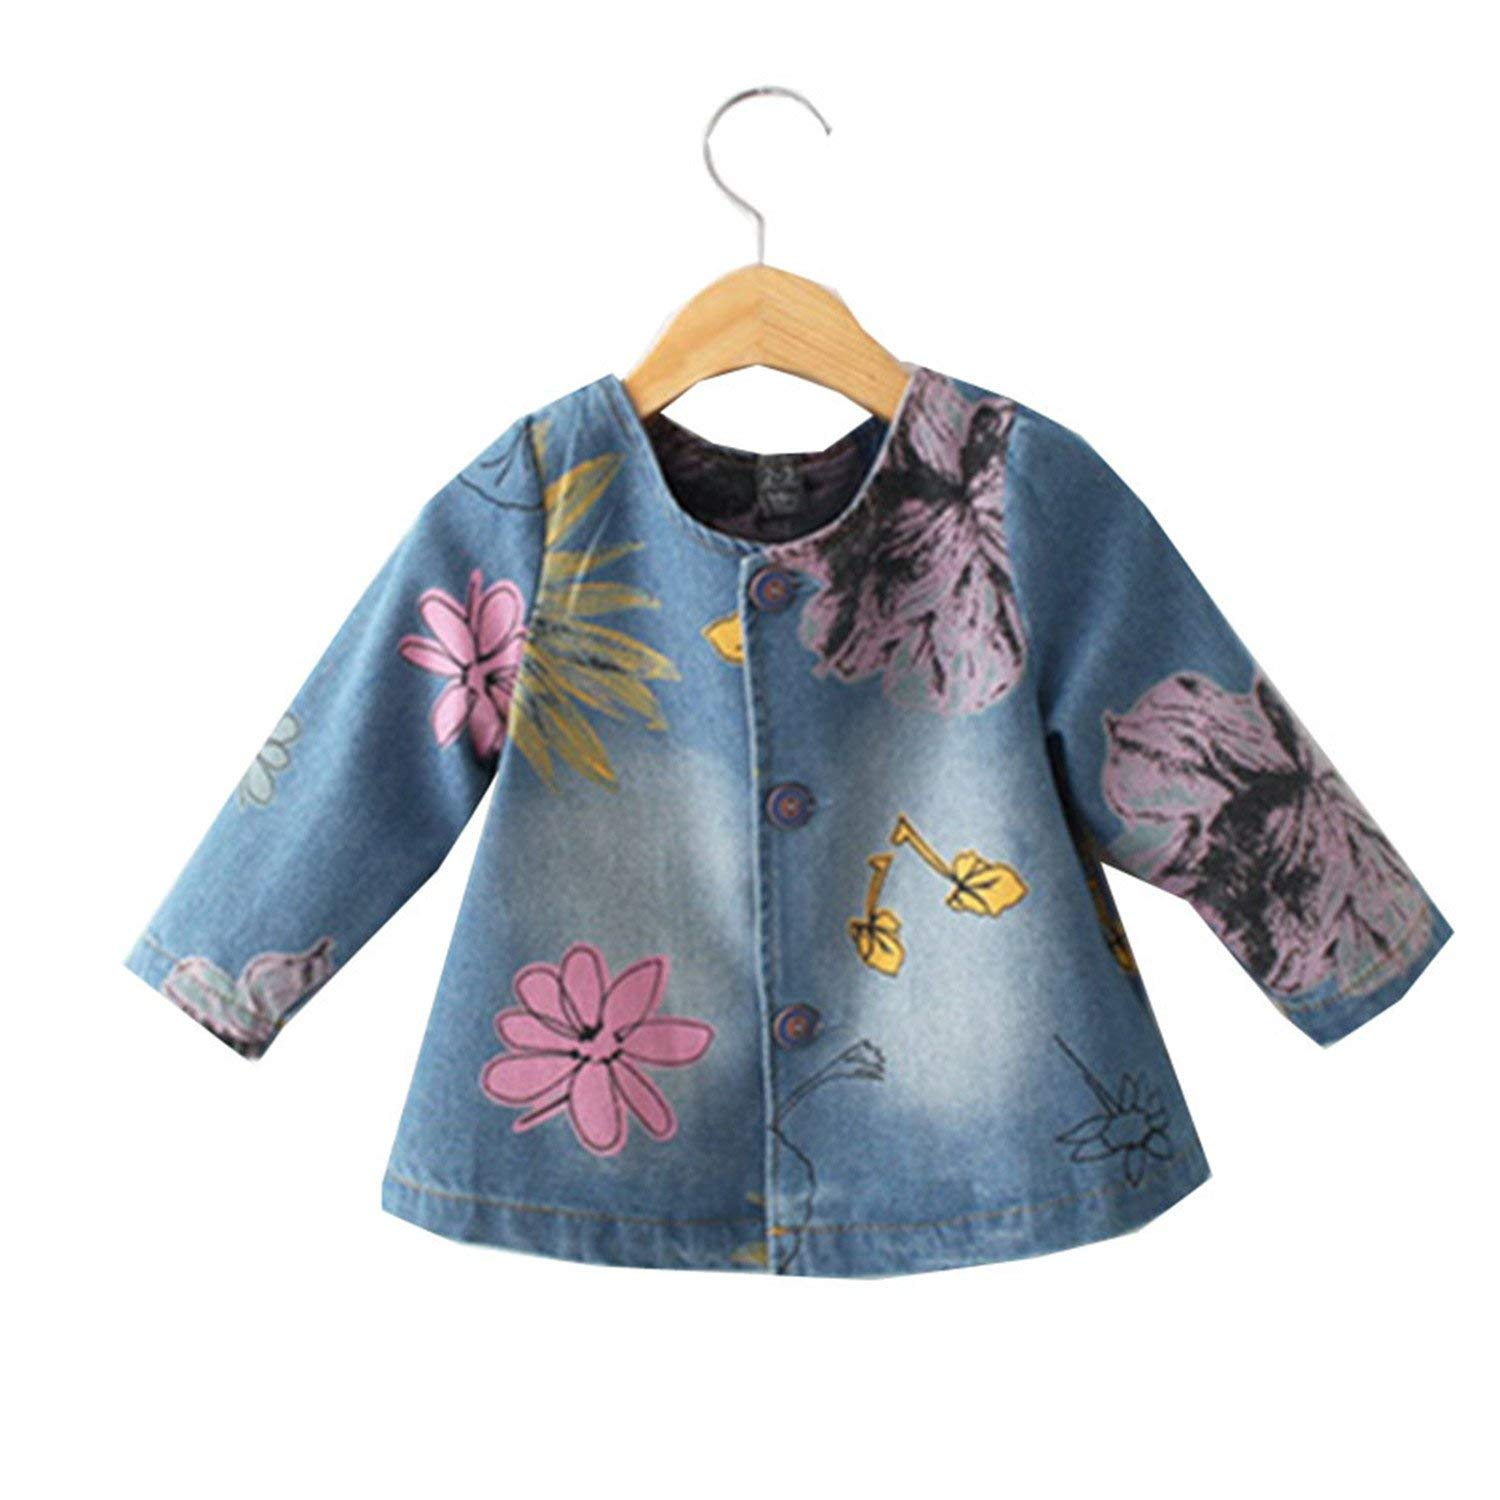 3422108ec Buy Nelliewins Denim Jacket For Girls Toddler Jeans Coat Spring ...